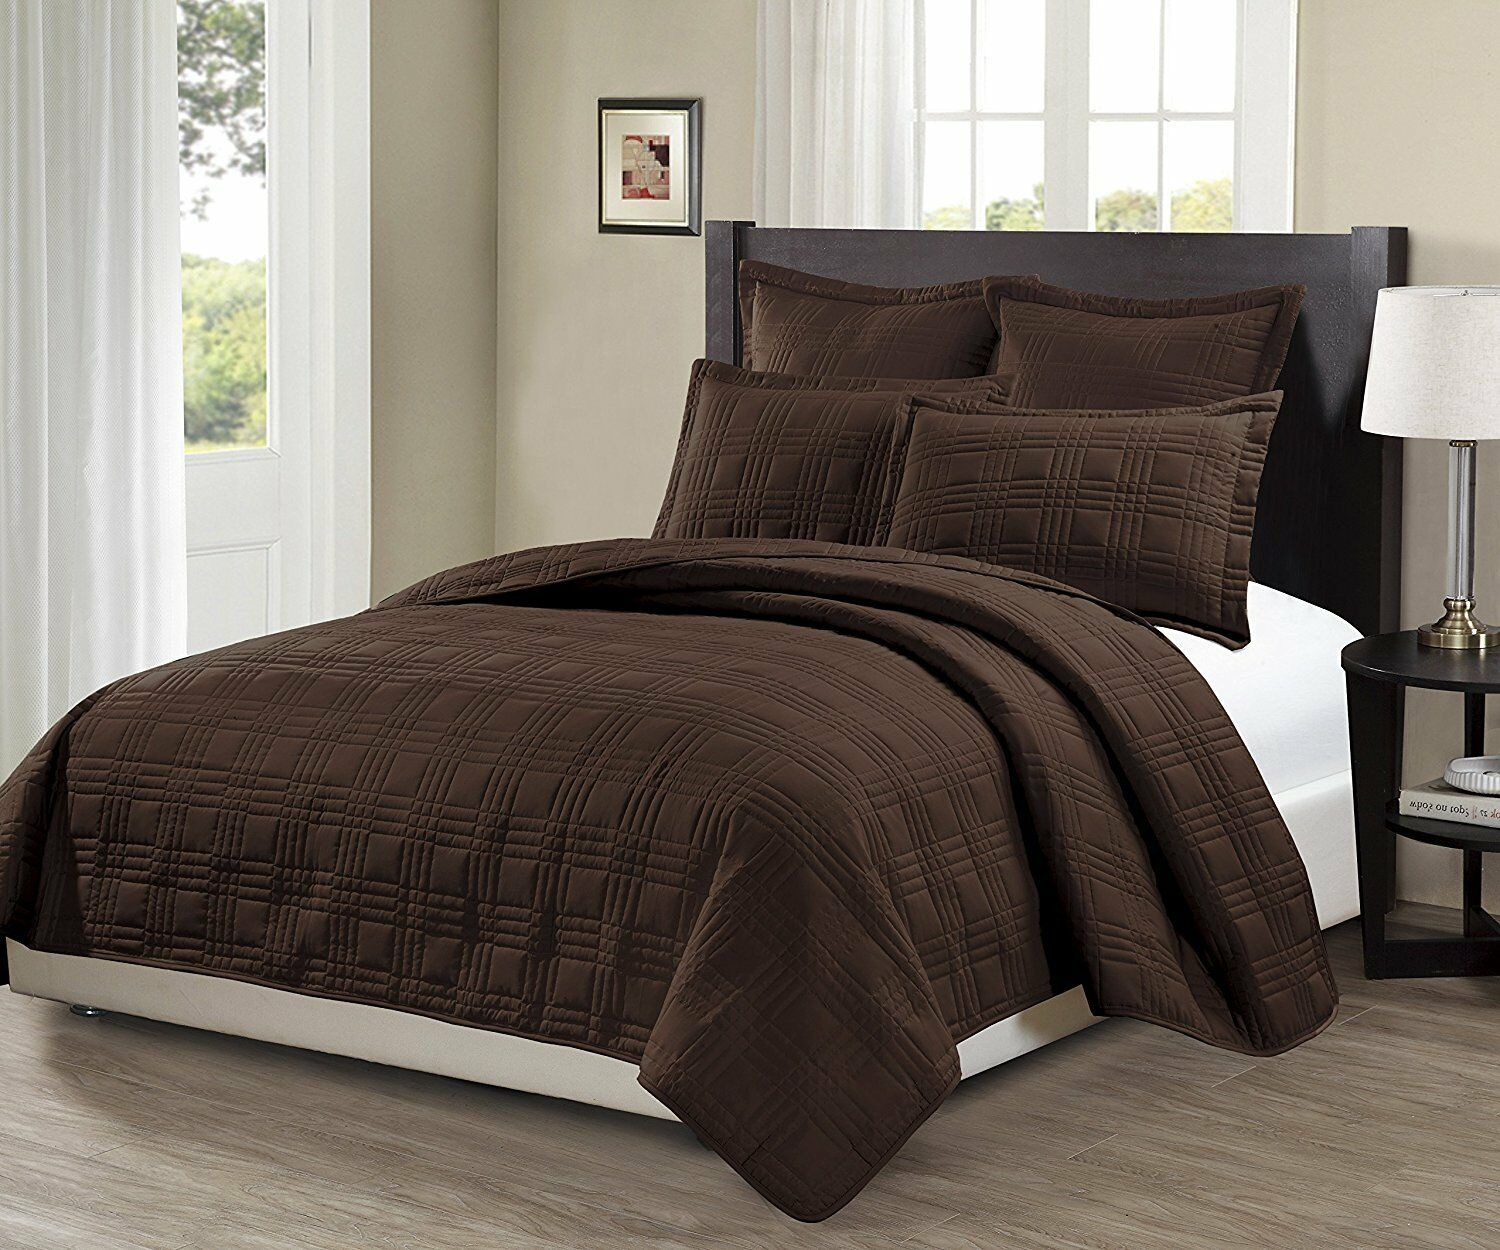 Assassins Creed Bettwäsche Linen 3pc Oversize Geo Quilted Embroidery Solid Brown Bedspread